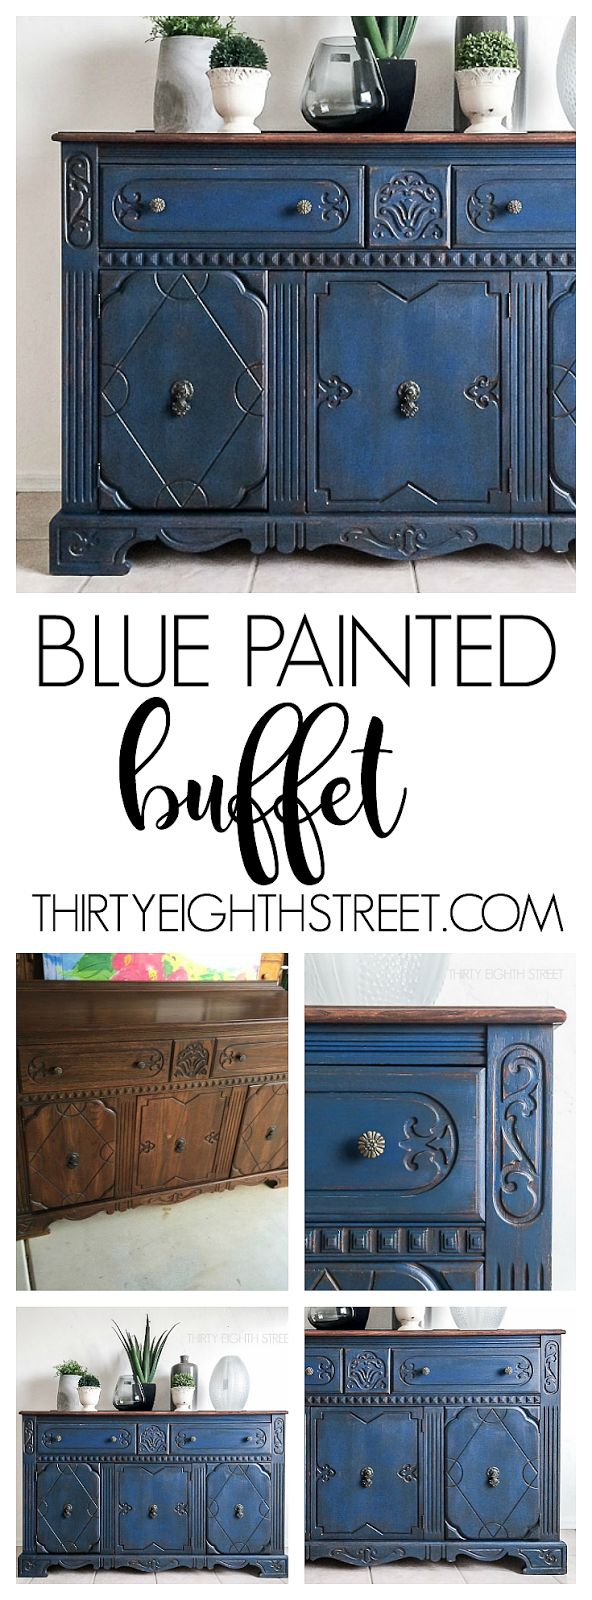 Blue Painted Buffet Makeover! Stunning furniture makeovers using color! Blue Painted Furniture  Ideas. Before and After Furniture. Chalk Painted Furniture. DIY Furniture Ideas!